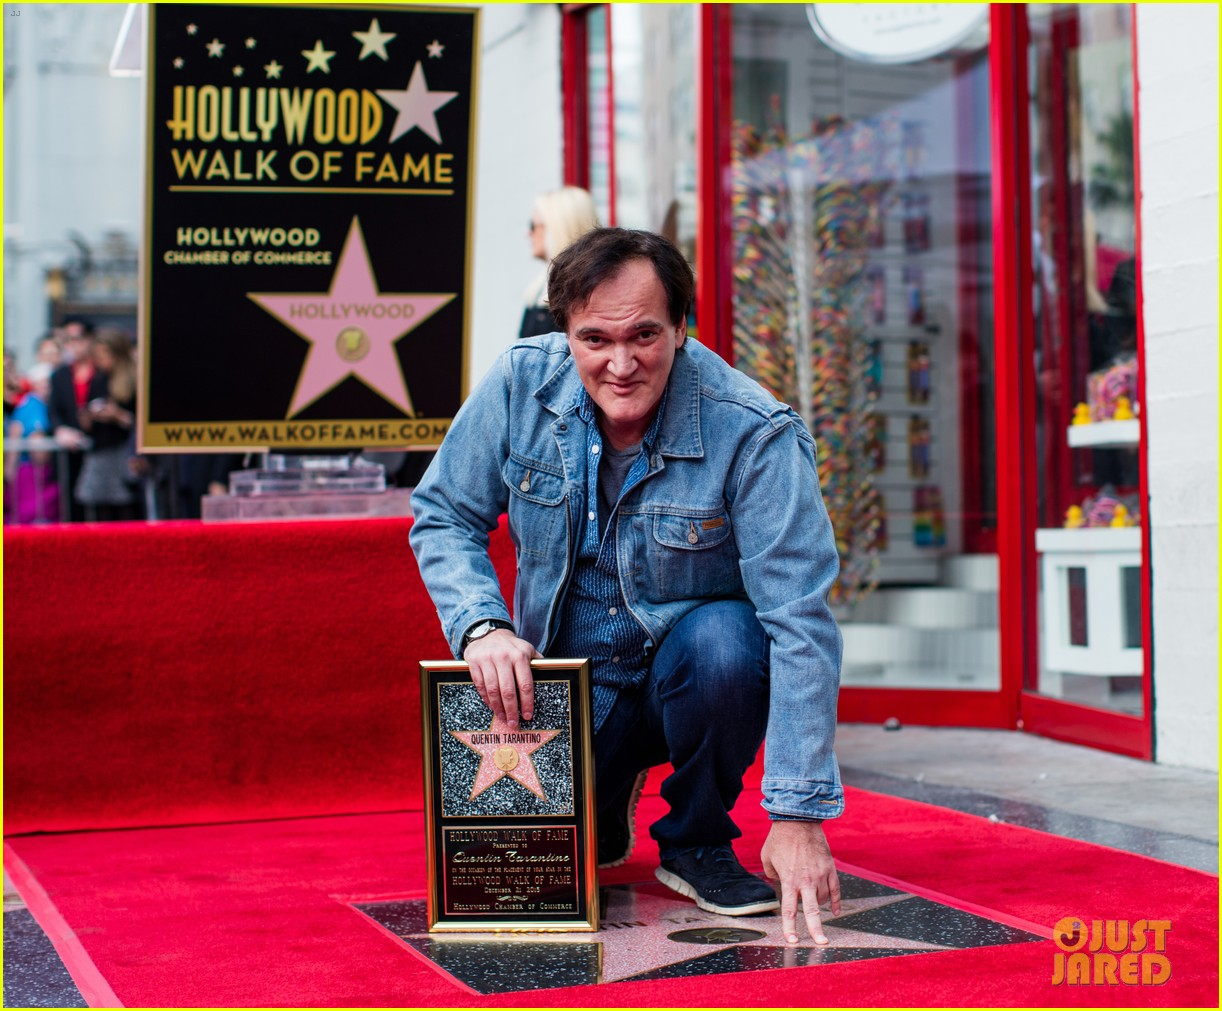 HOLLYWOOD, CA - DECEMBER 21: Filmmaker and Director Quentin Tarantino poses with his star on the Hollywood Walk of Fame on December 21, 2015 in Hollywood, California. (Photo by Mark Davis/Getty Images)